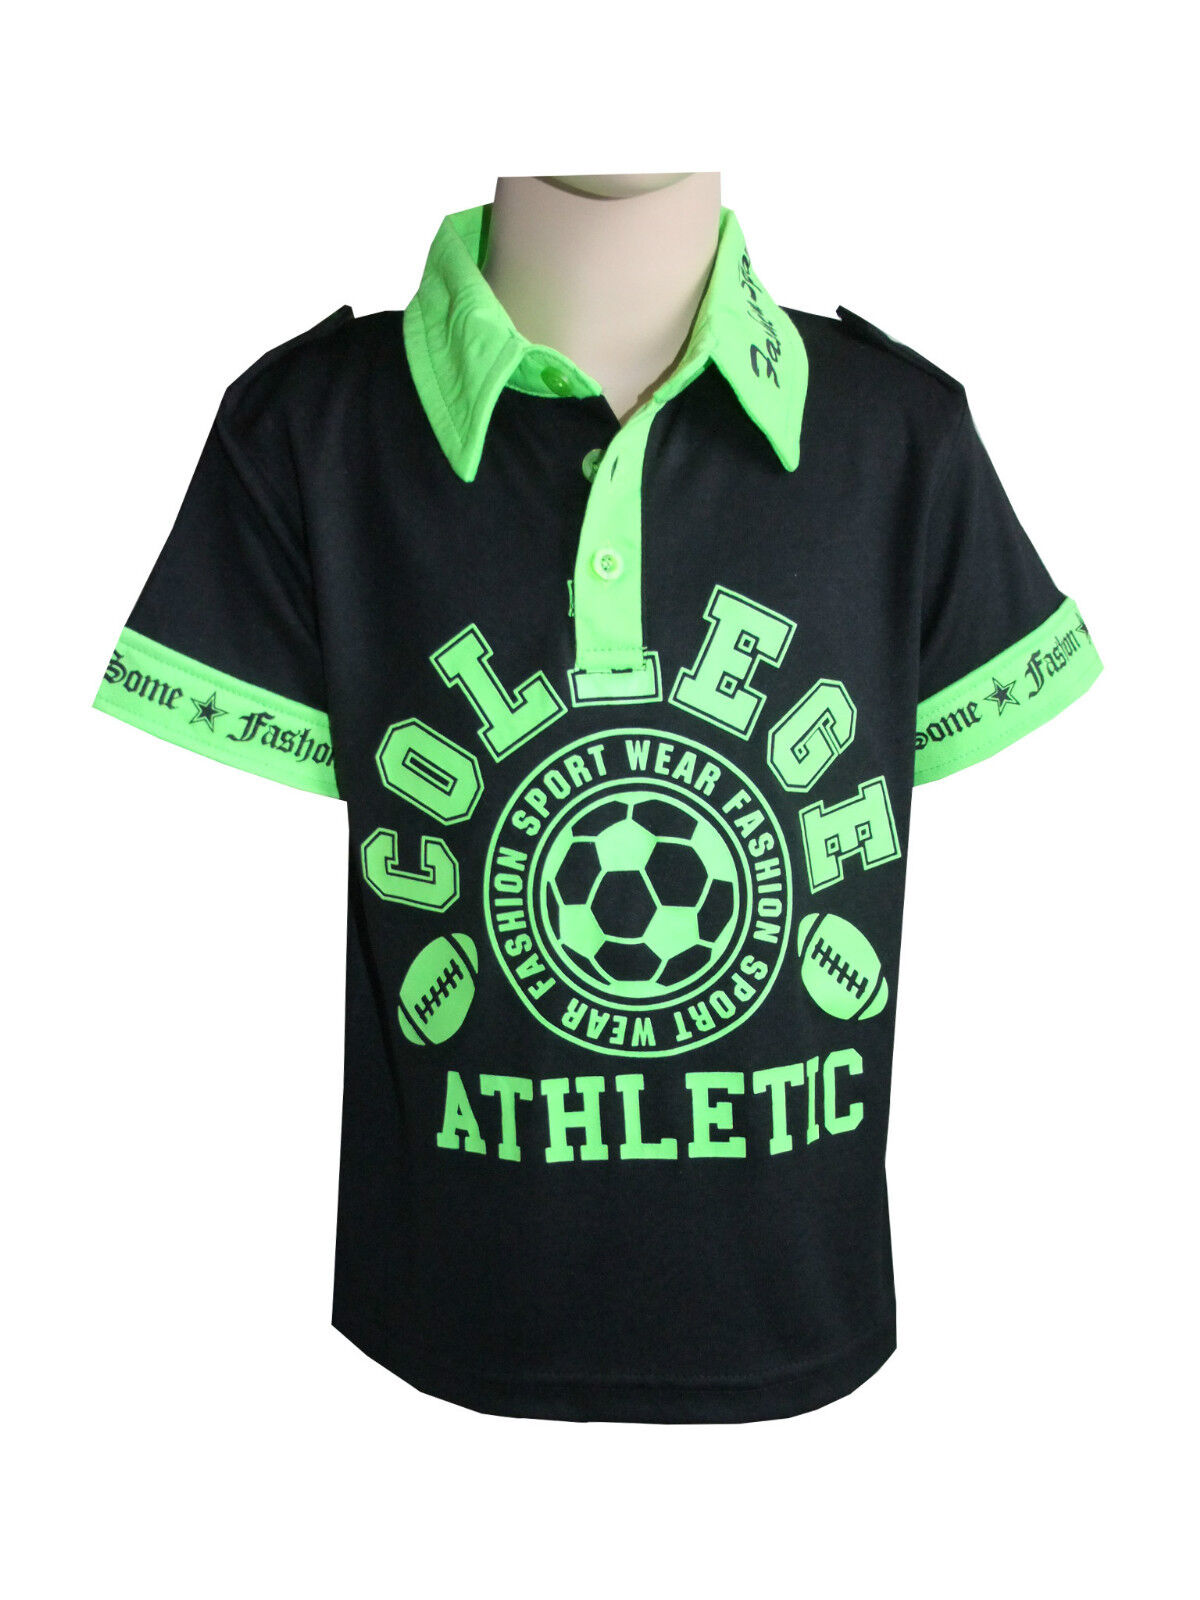 Boys Kids Sports T-shirts Casual Wear Short Sleeve Soft Collared Tops Yr 2 to 14